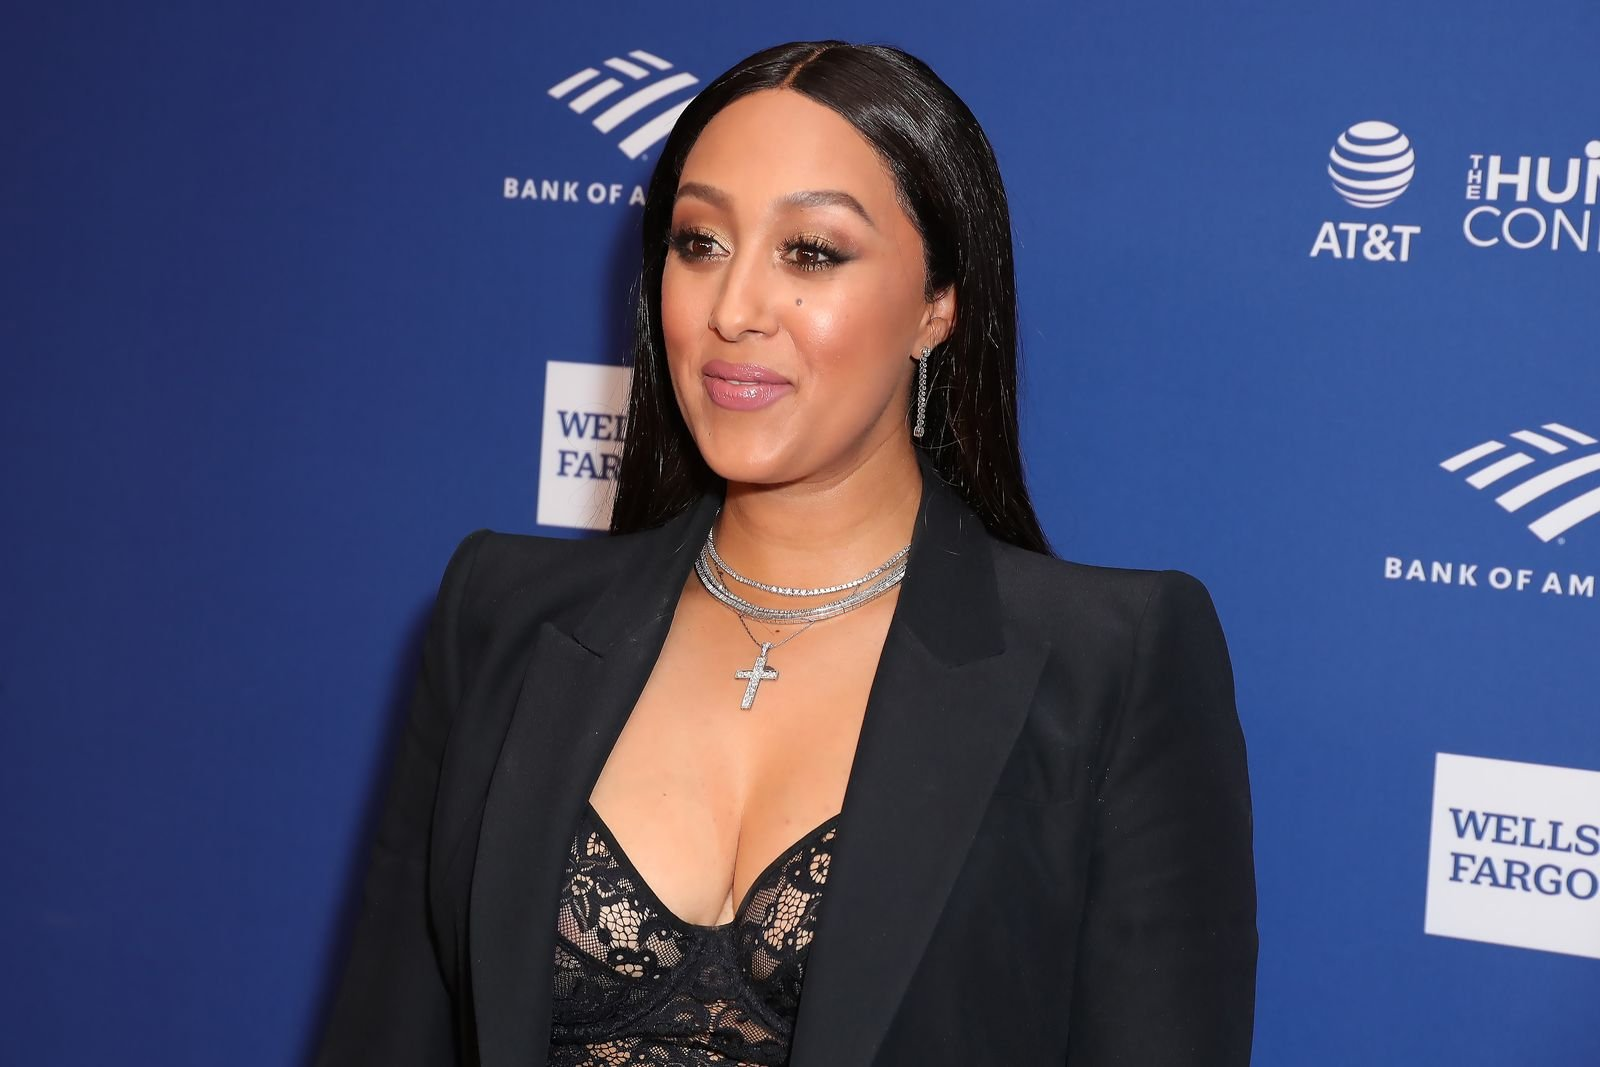 Tamera Mowry-Housley at the 51st NAACP Image Awards, 2020 | Source: Getty Images